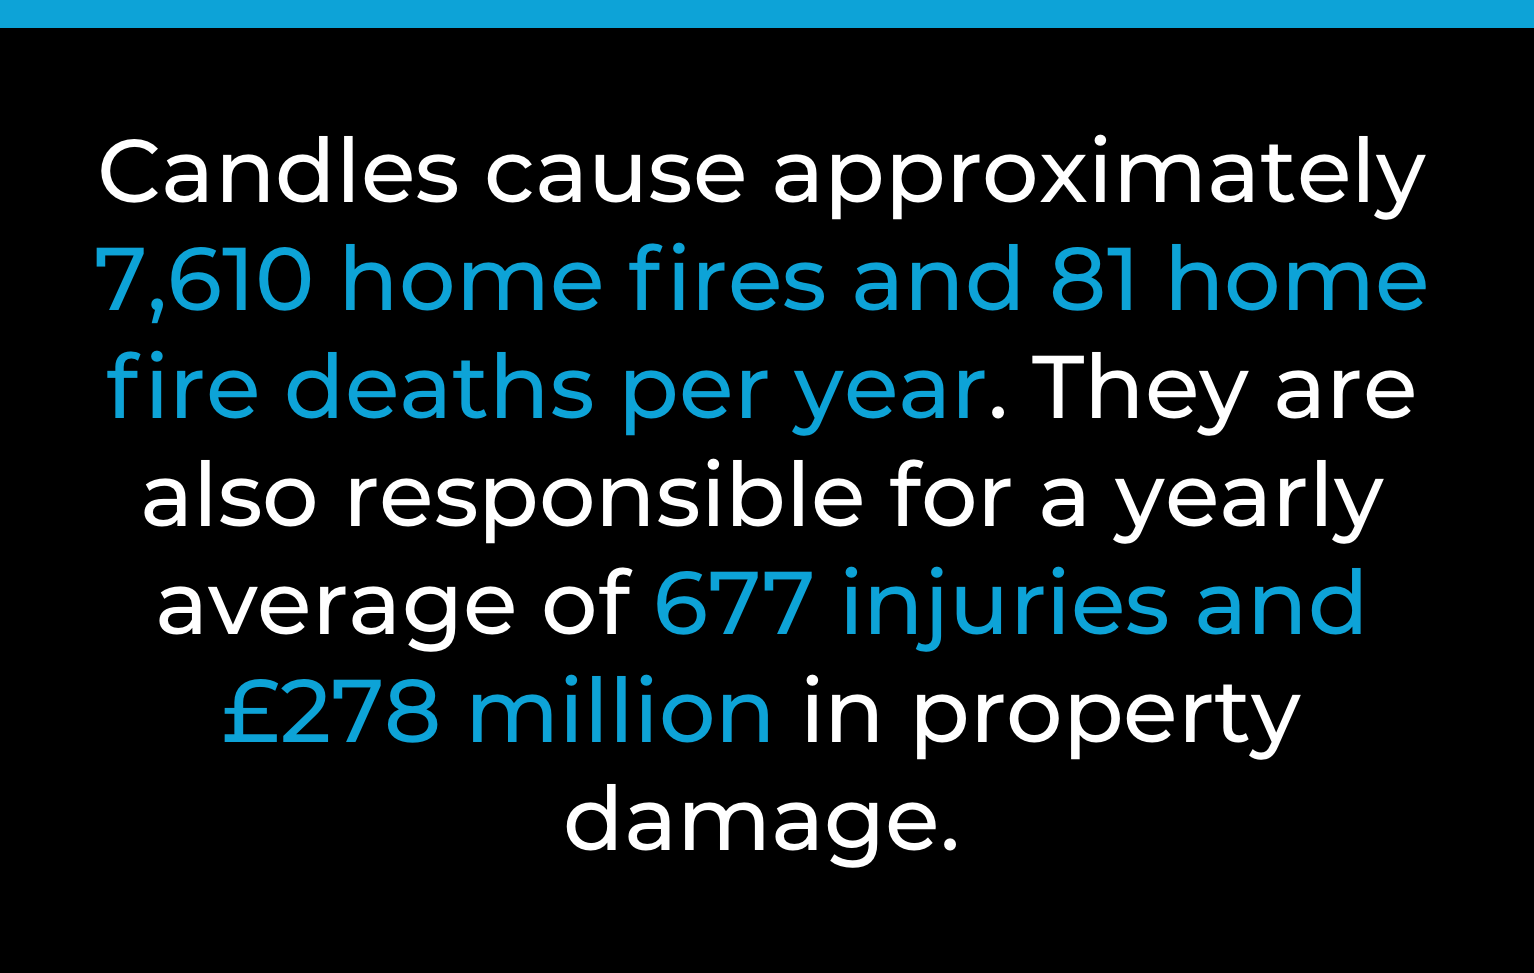 Candles cause approximately 7,610 home fire deaths per year. They are also responsible for a yearly average of 677 injuries and £278 million in property damage